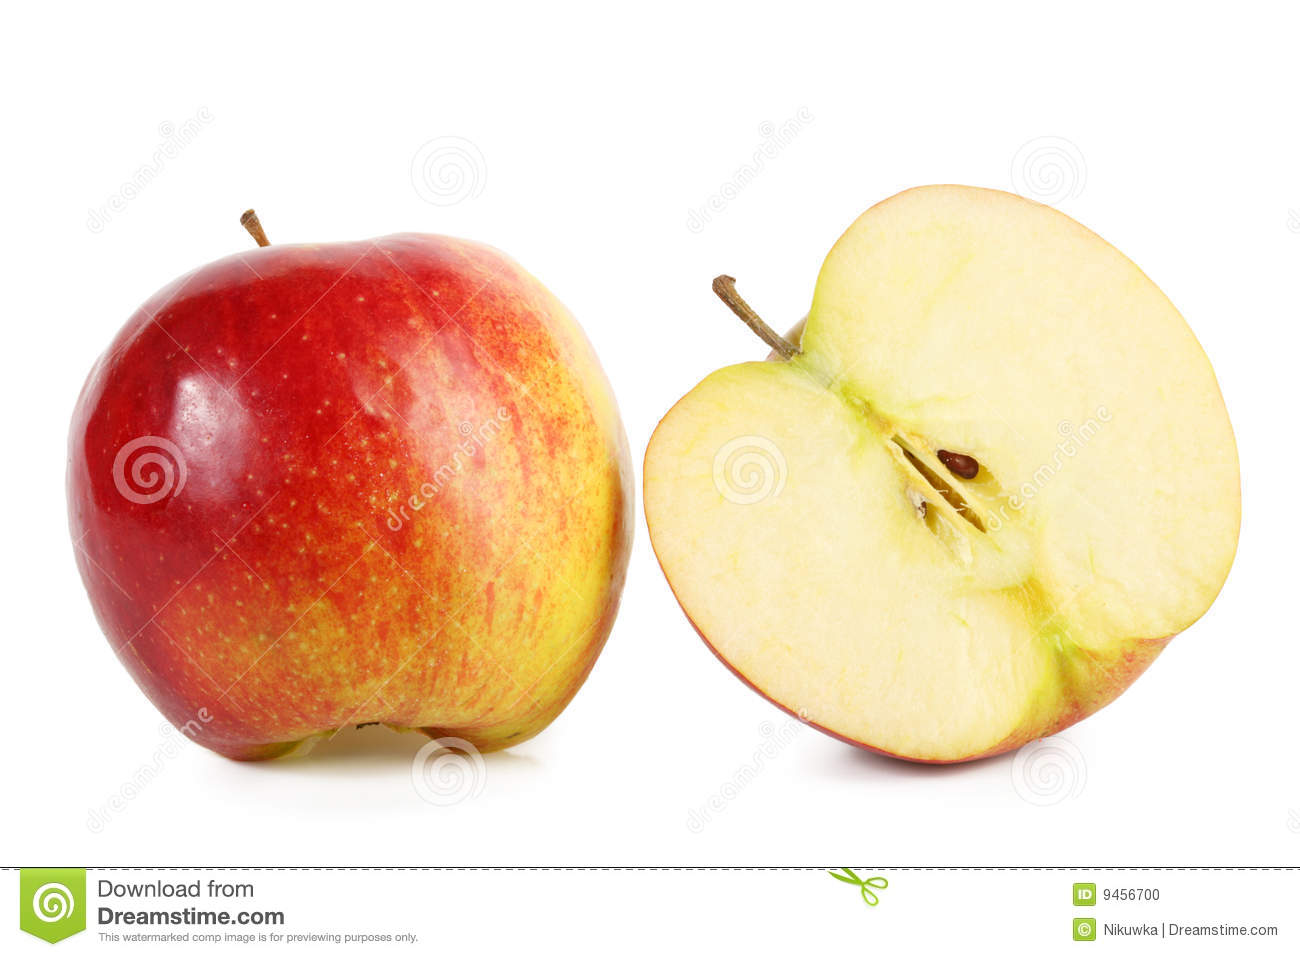 red apple slice. royalty-free stock photo. download fresh red apple with slice